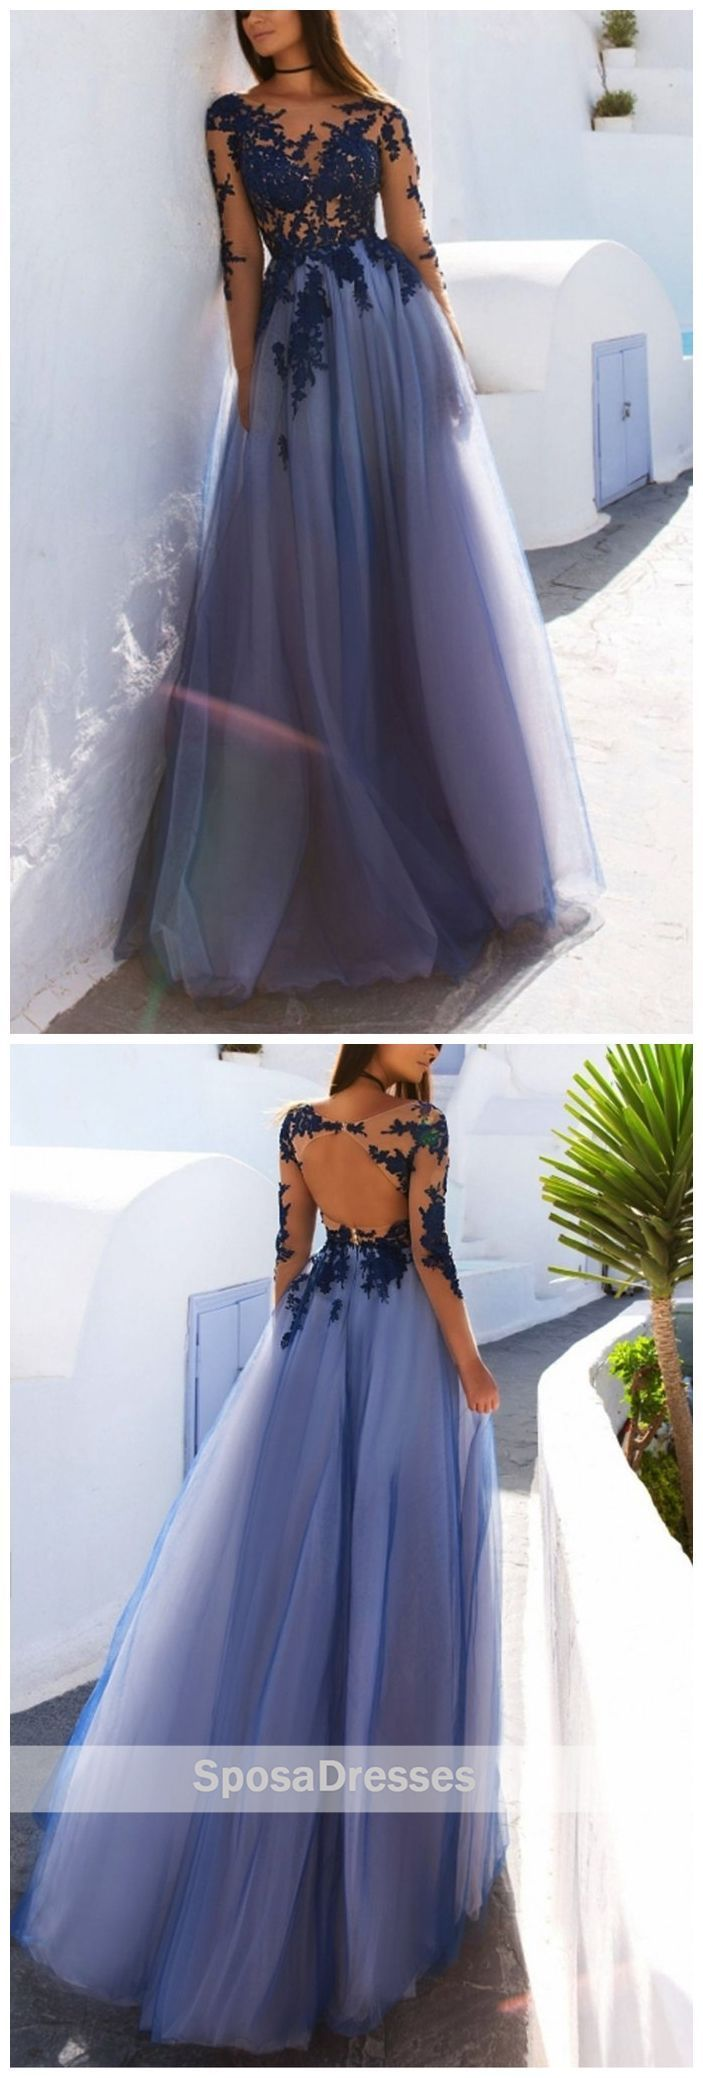 Sexy See Through Blue Lace Long Sleeve Open Back Custom Long Evening Prom Dresses, 17482 #longpromdresses #PromDresses